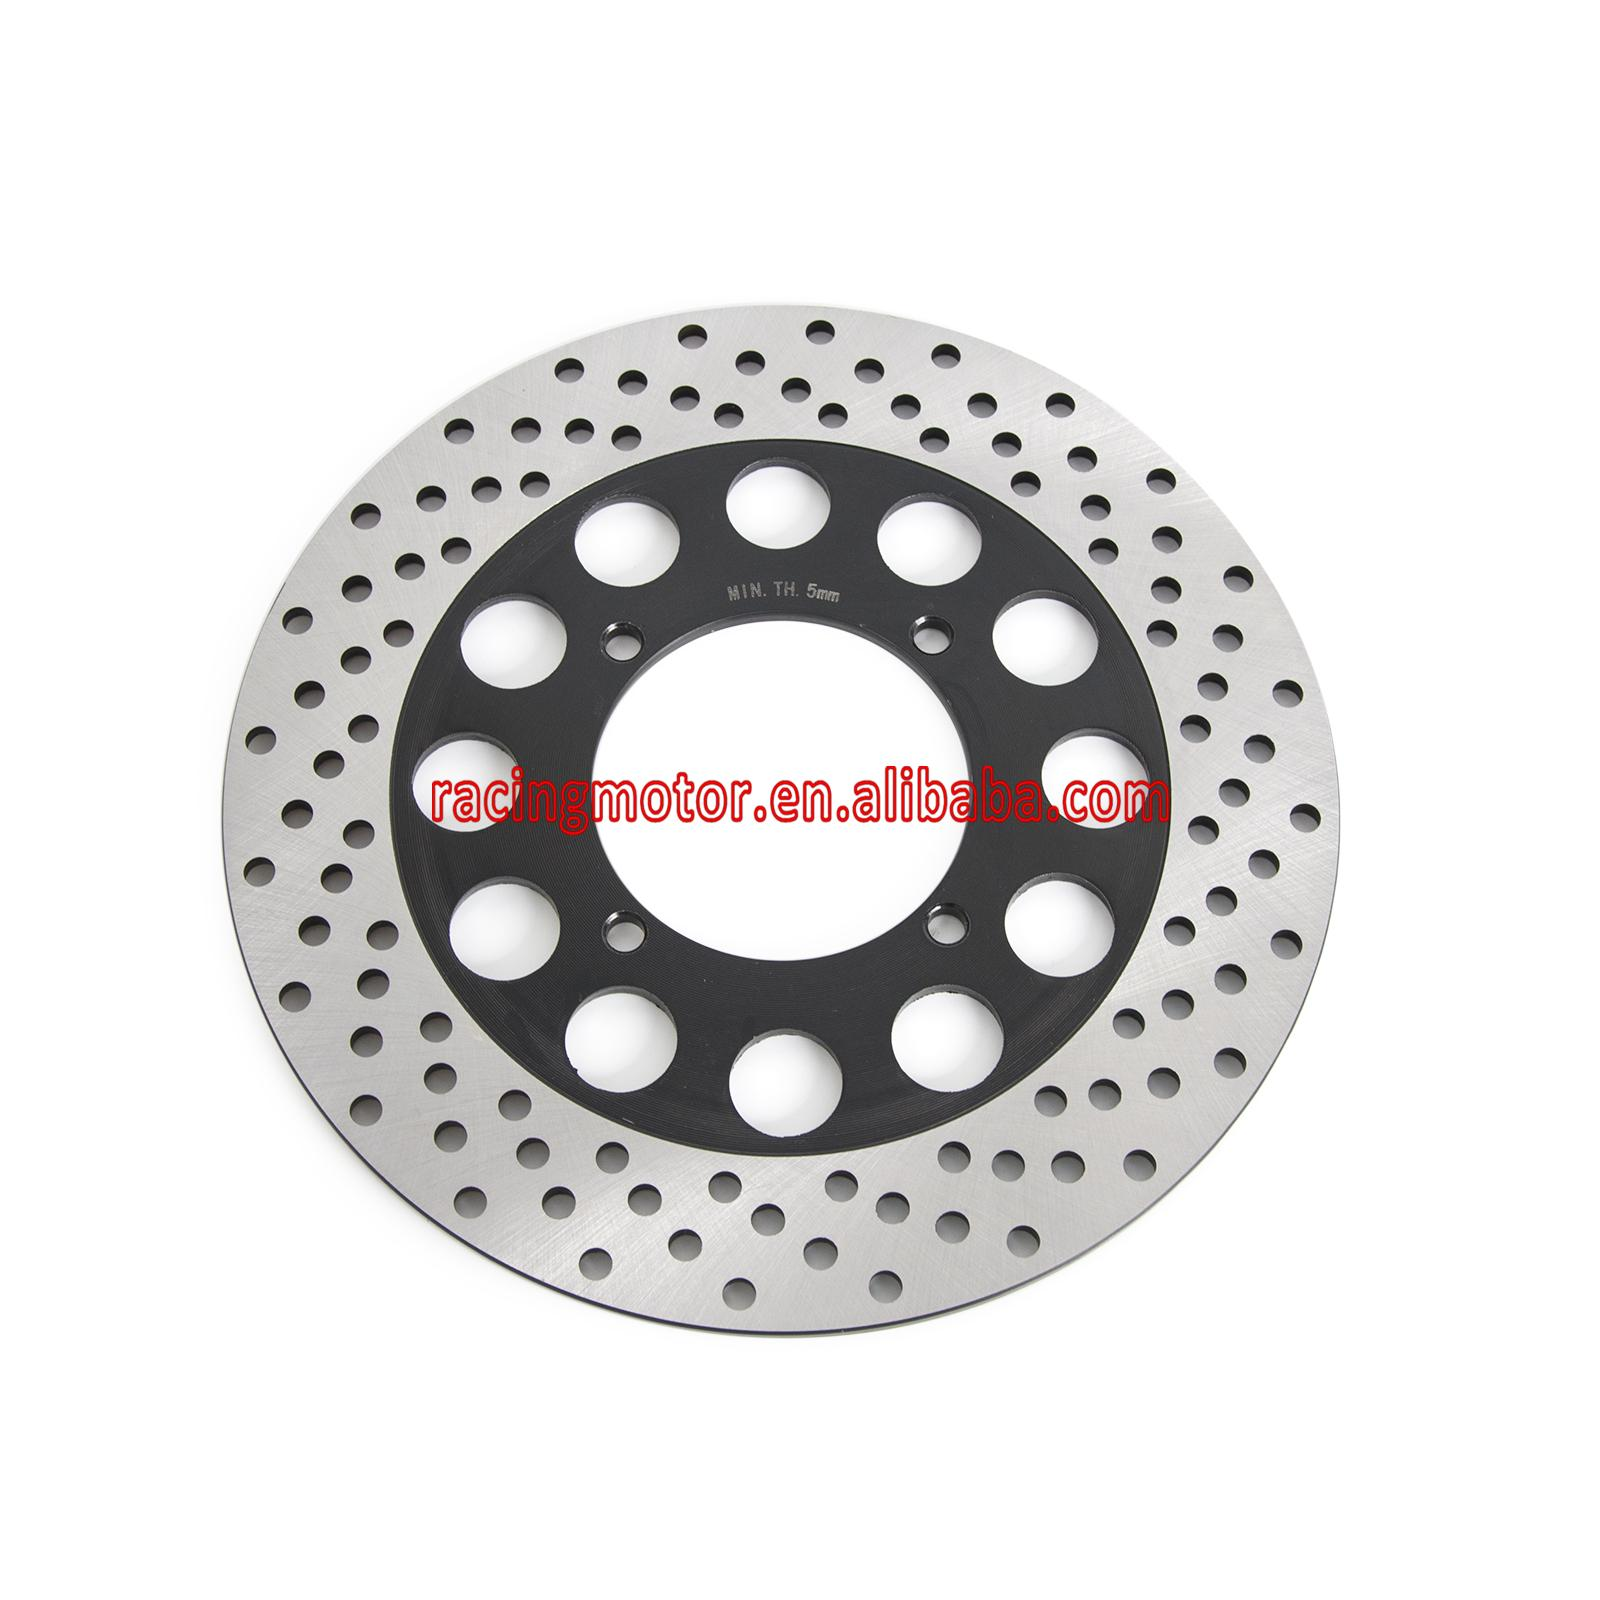 Rear Brake Disc Rotor Steel Fits For Suzuki GSF 250 N/ZM/P/NP/ZP/R/NR 92-96 rear brake steel disc rotor for suzuki gsxr1300 gsx r 1300 gsf1200 gs 1200